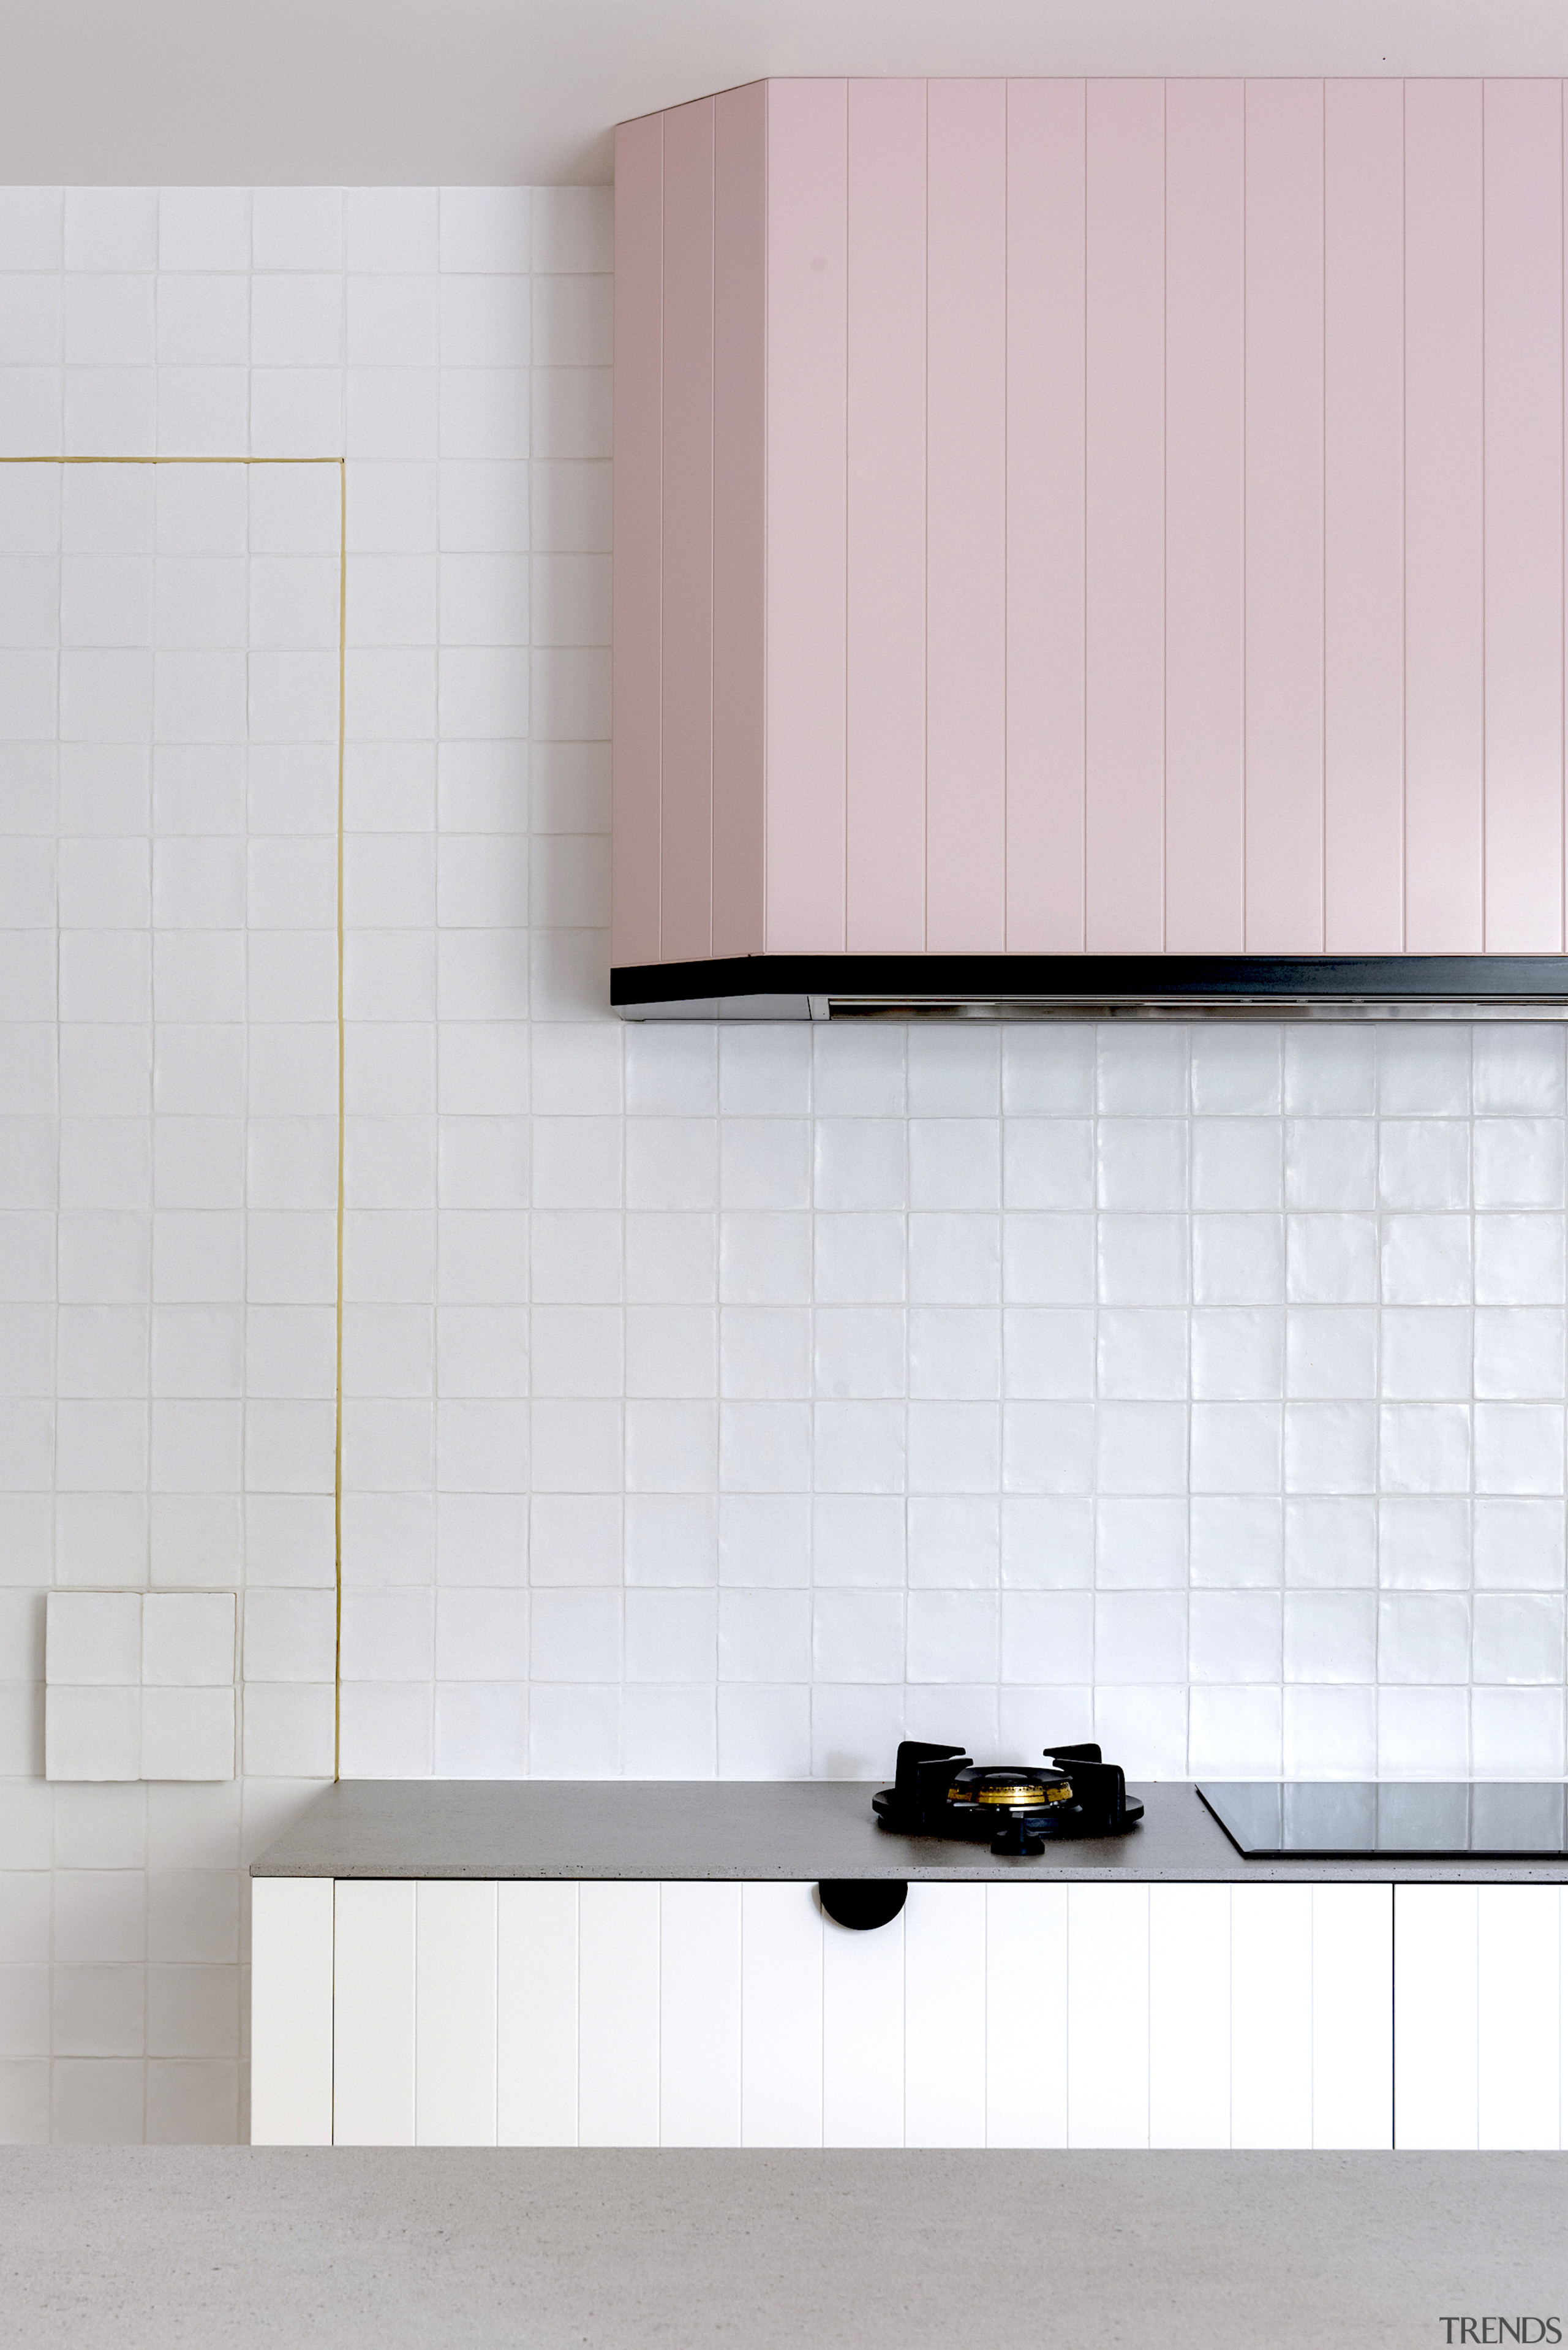 Handmade warm white butcher tiles were introduced on gray, white